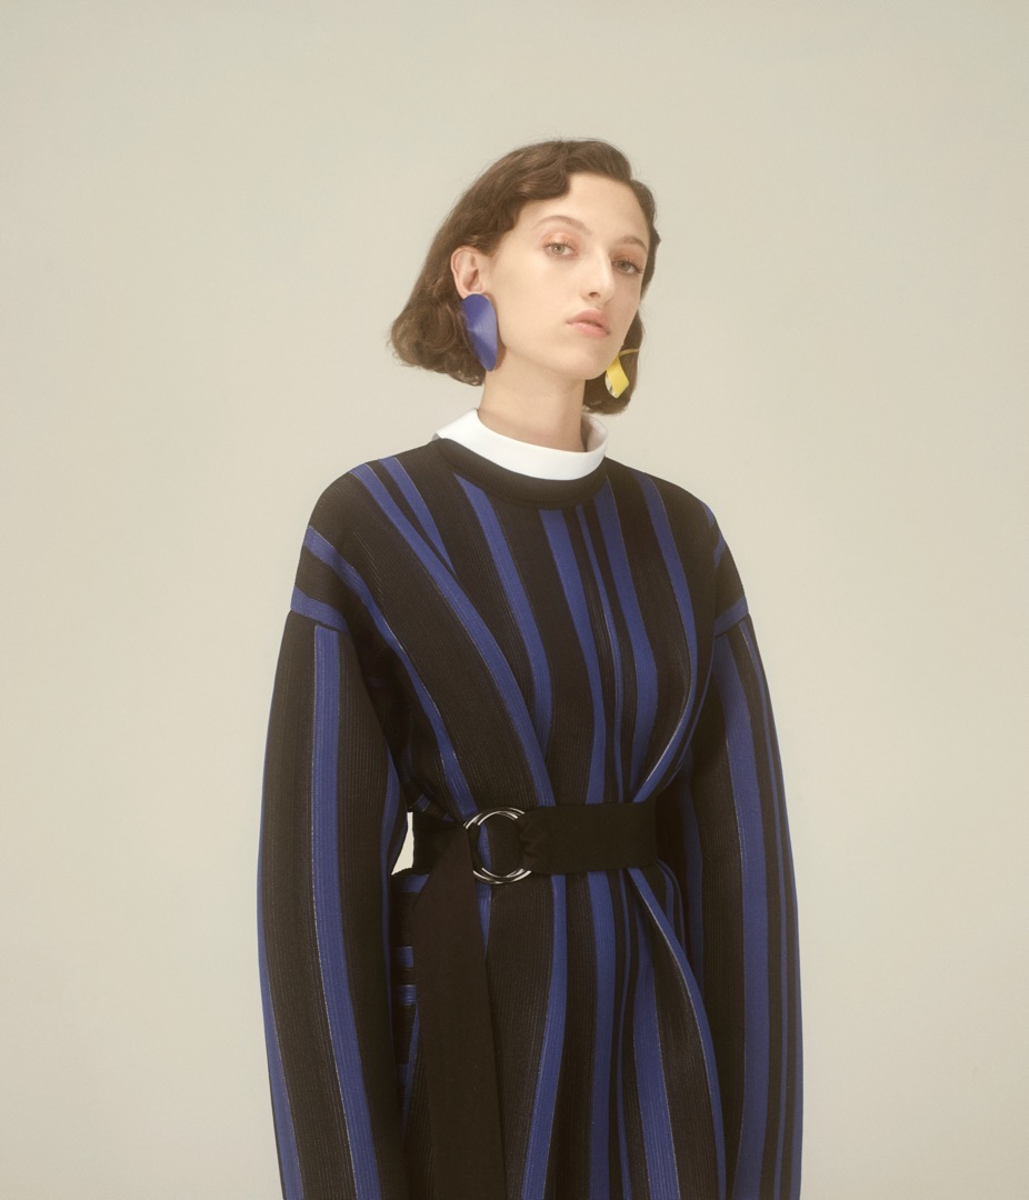 A look from Phelan's Collection 4. Photo: Phelan